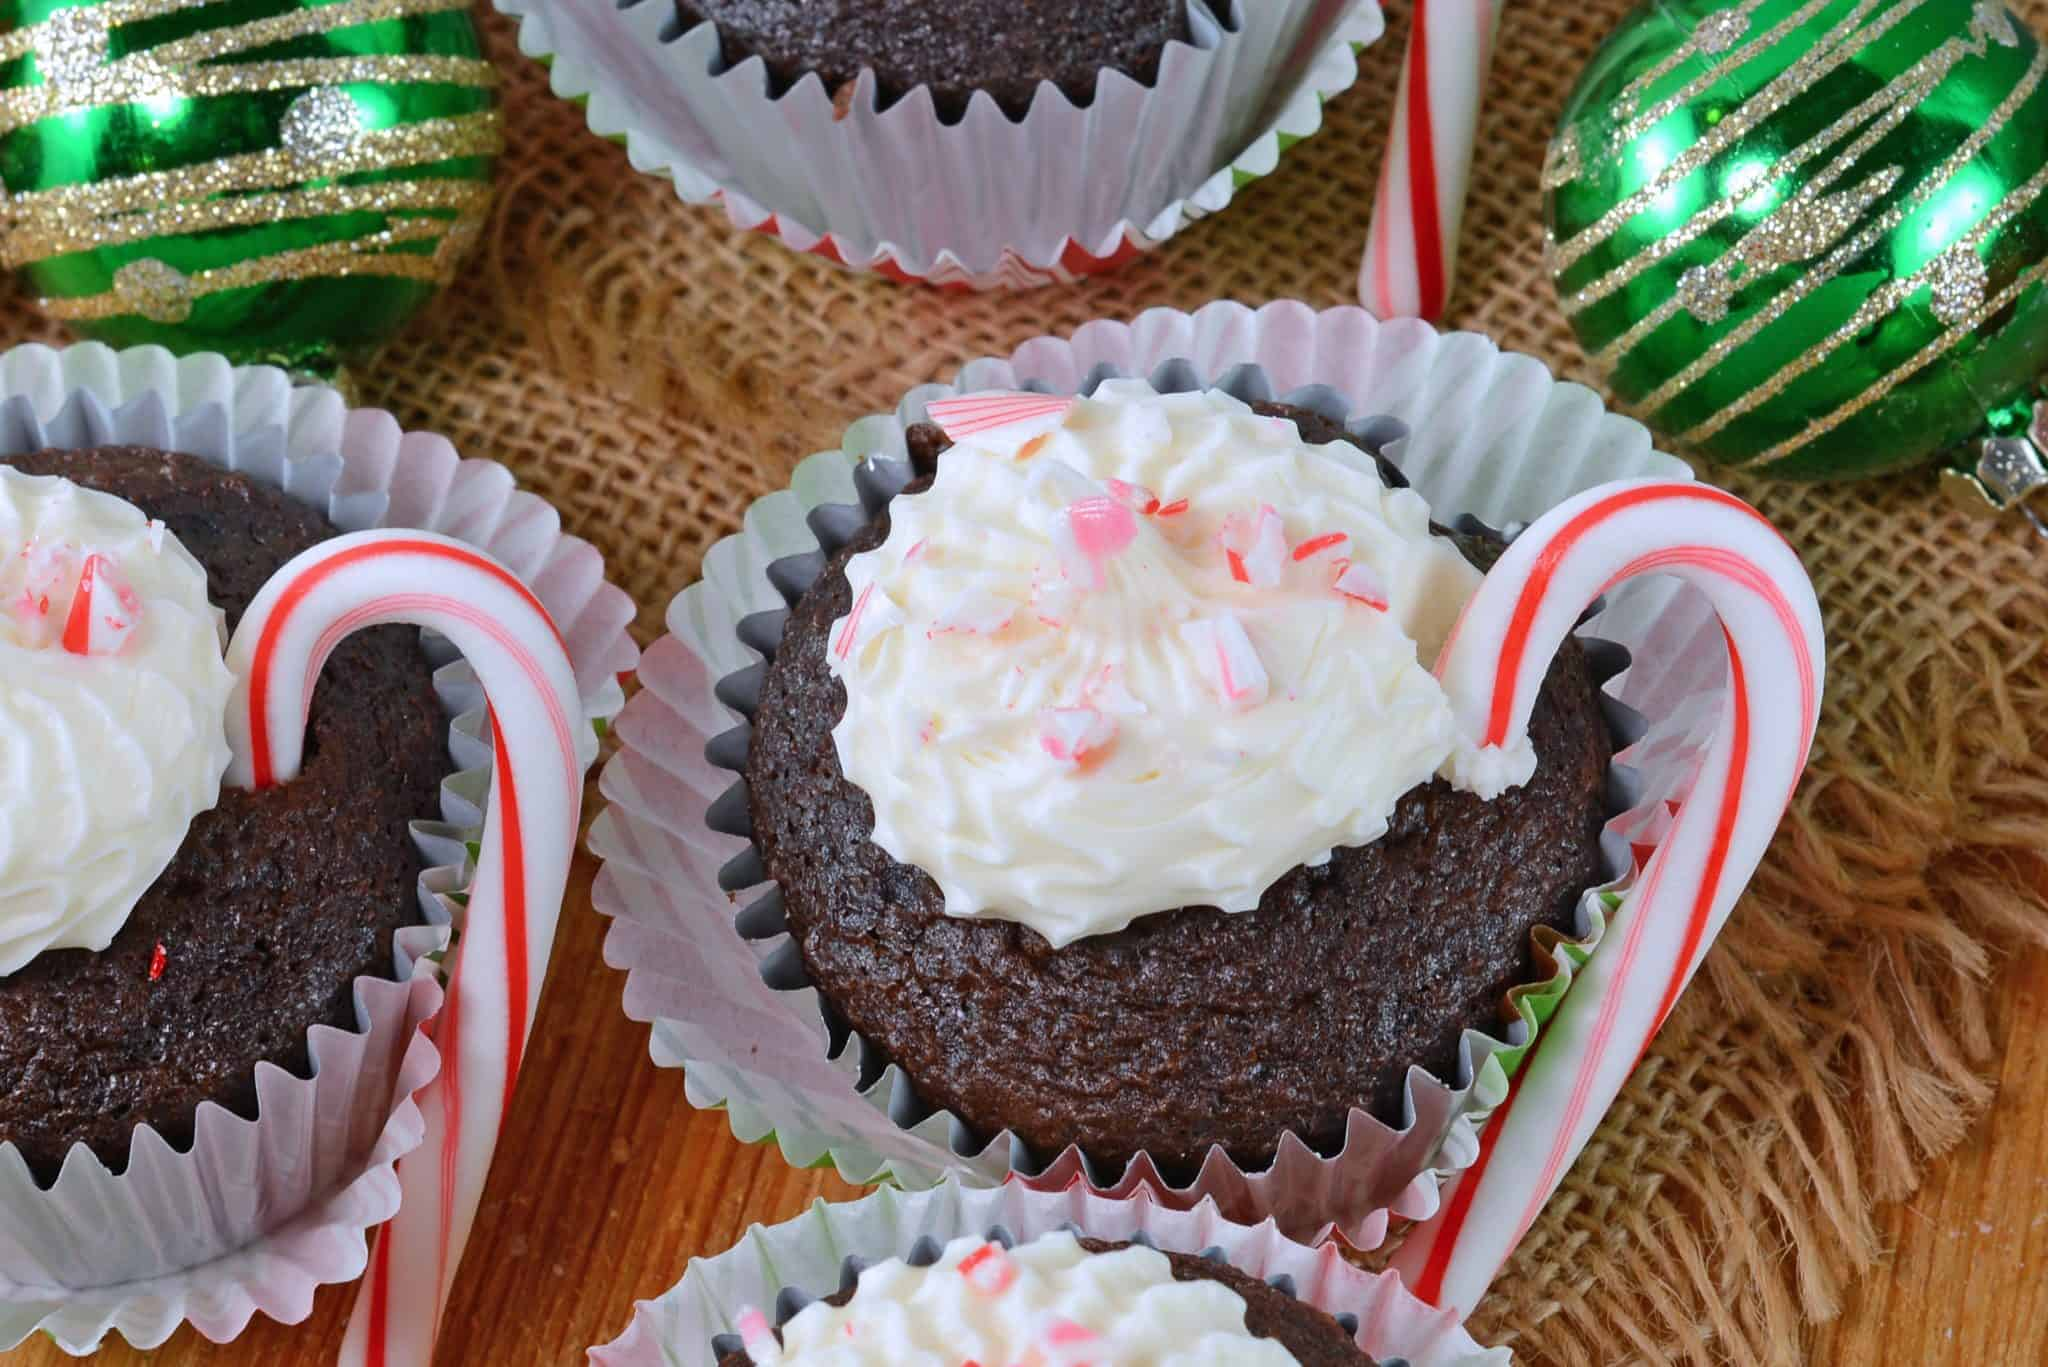 Peppermint Mocha Cupcakes use doctored up box mix, marshmallow creme frosting and candy canes for the ultimate kid-friendly cupcake recipe! #mochacupcakes #christmascupcakes www.savoryexperiments.com